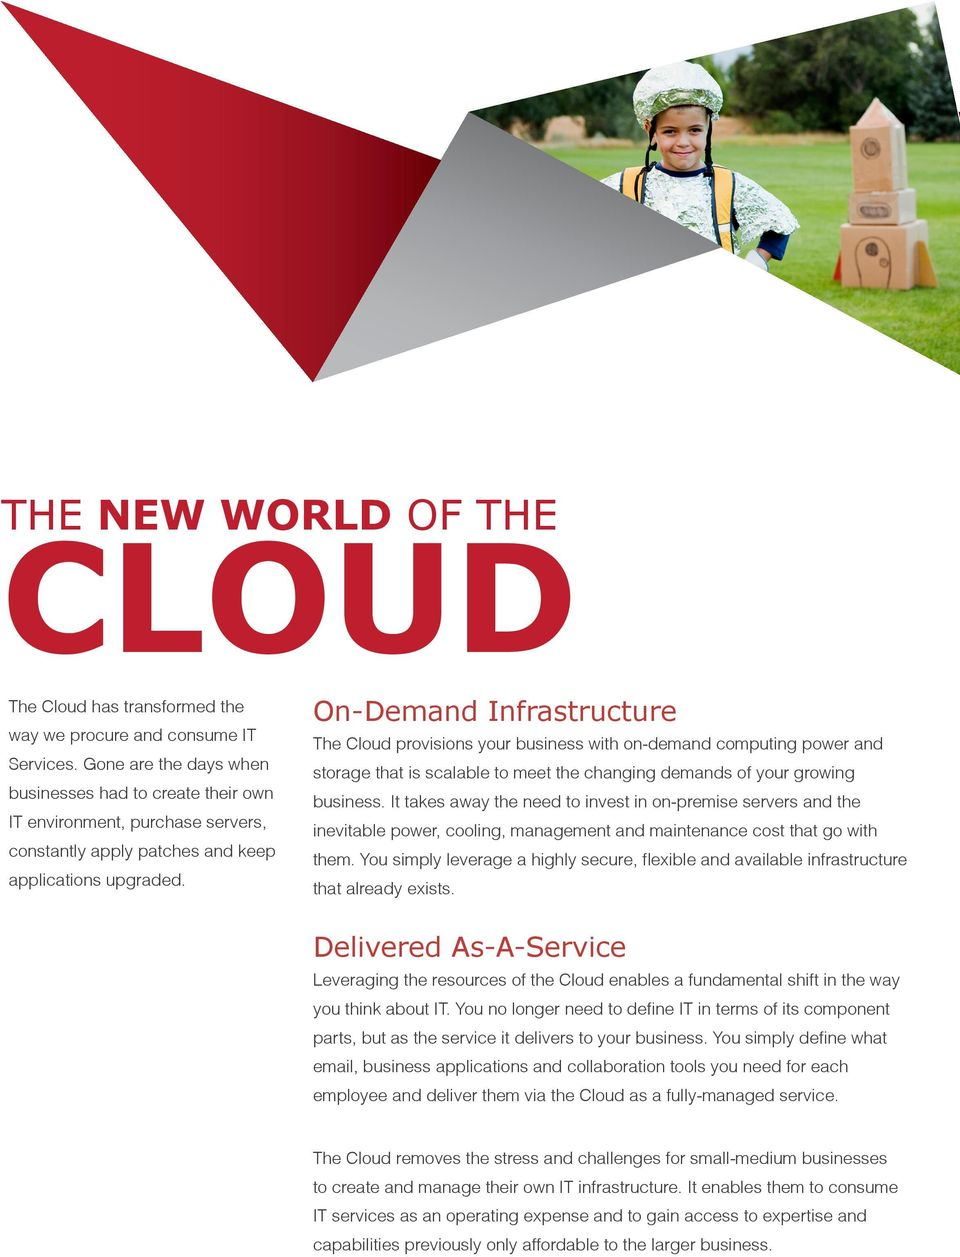 On-Demand Infrastructure The Cloud provisions your business with on-demand computing power and storage that is scalable to meet the changing demands of your growing business.